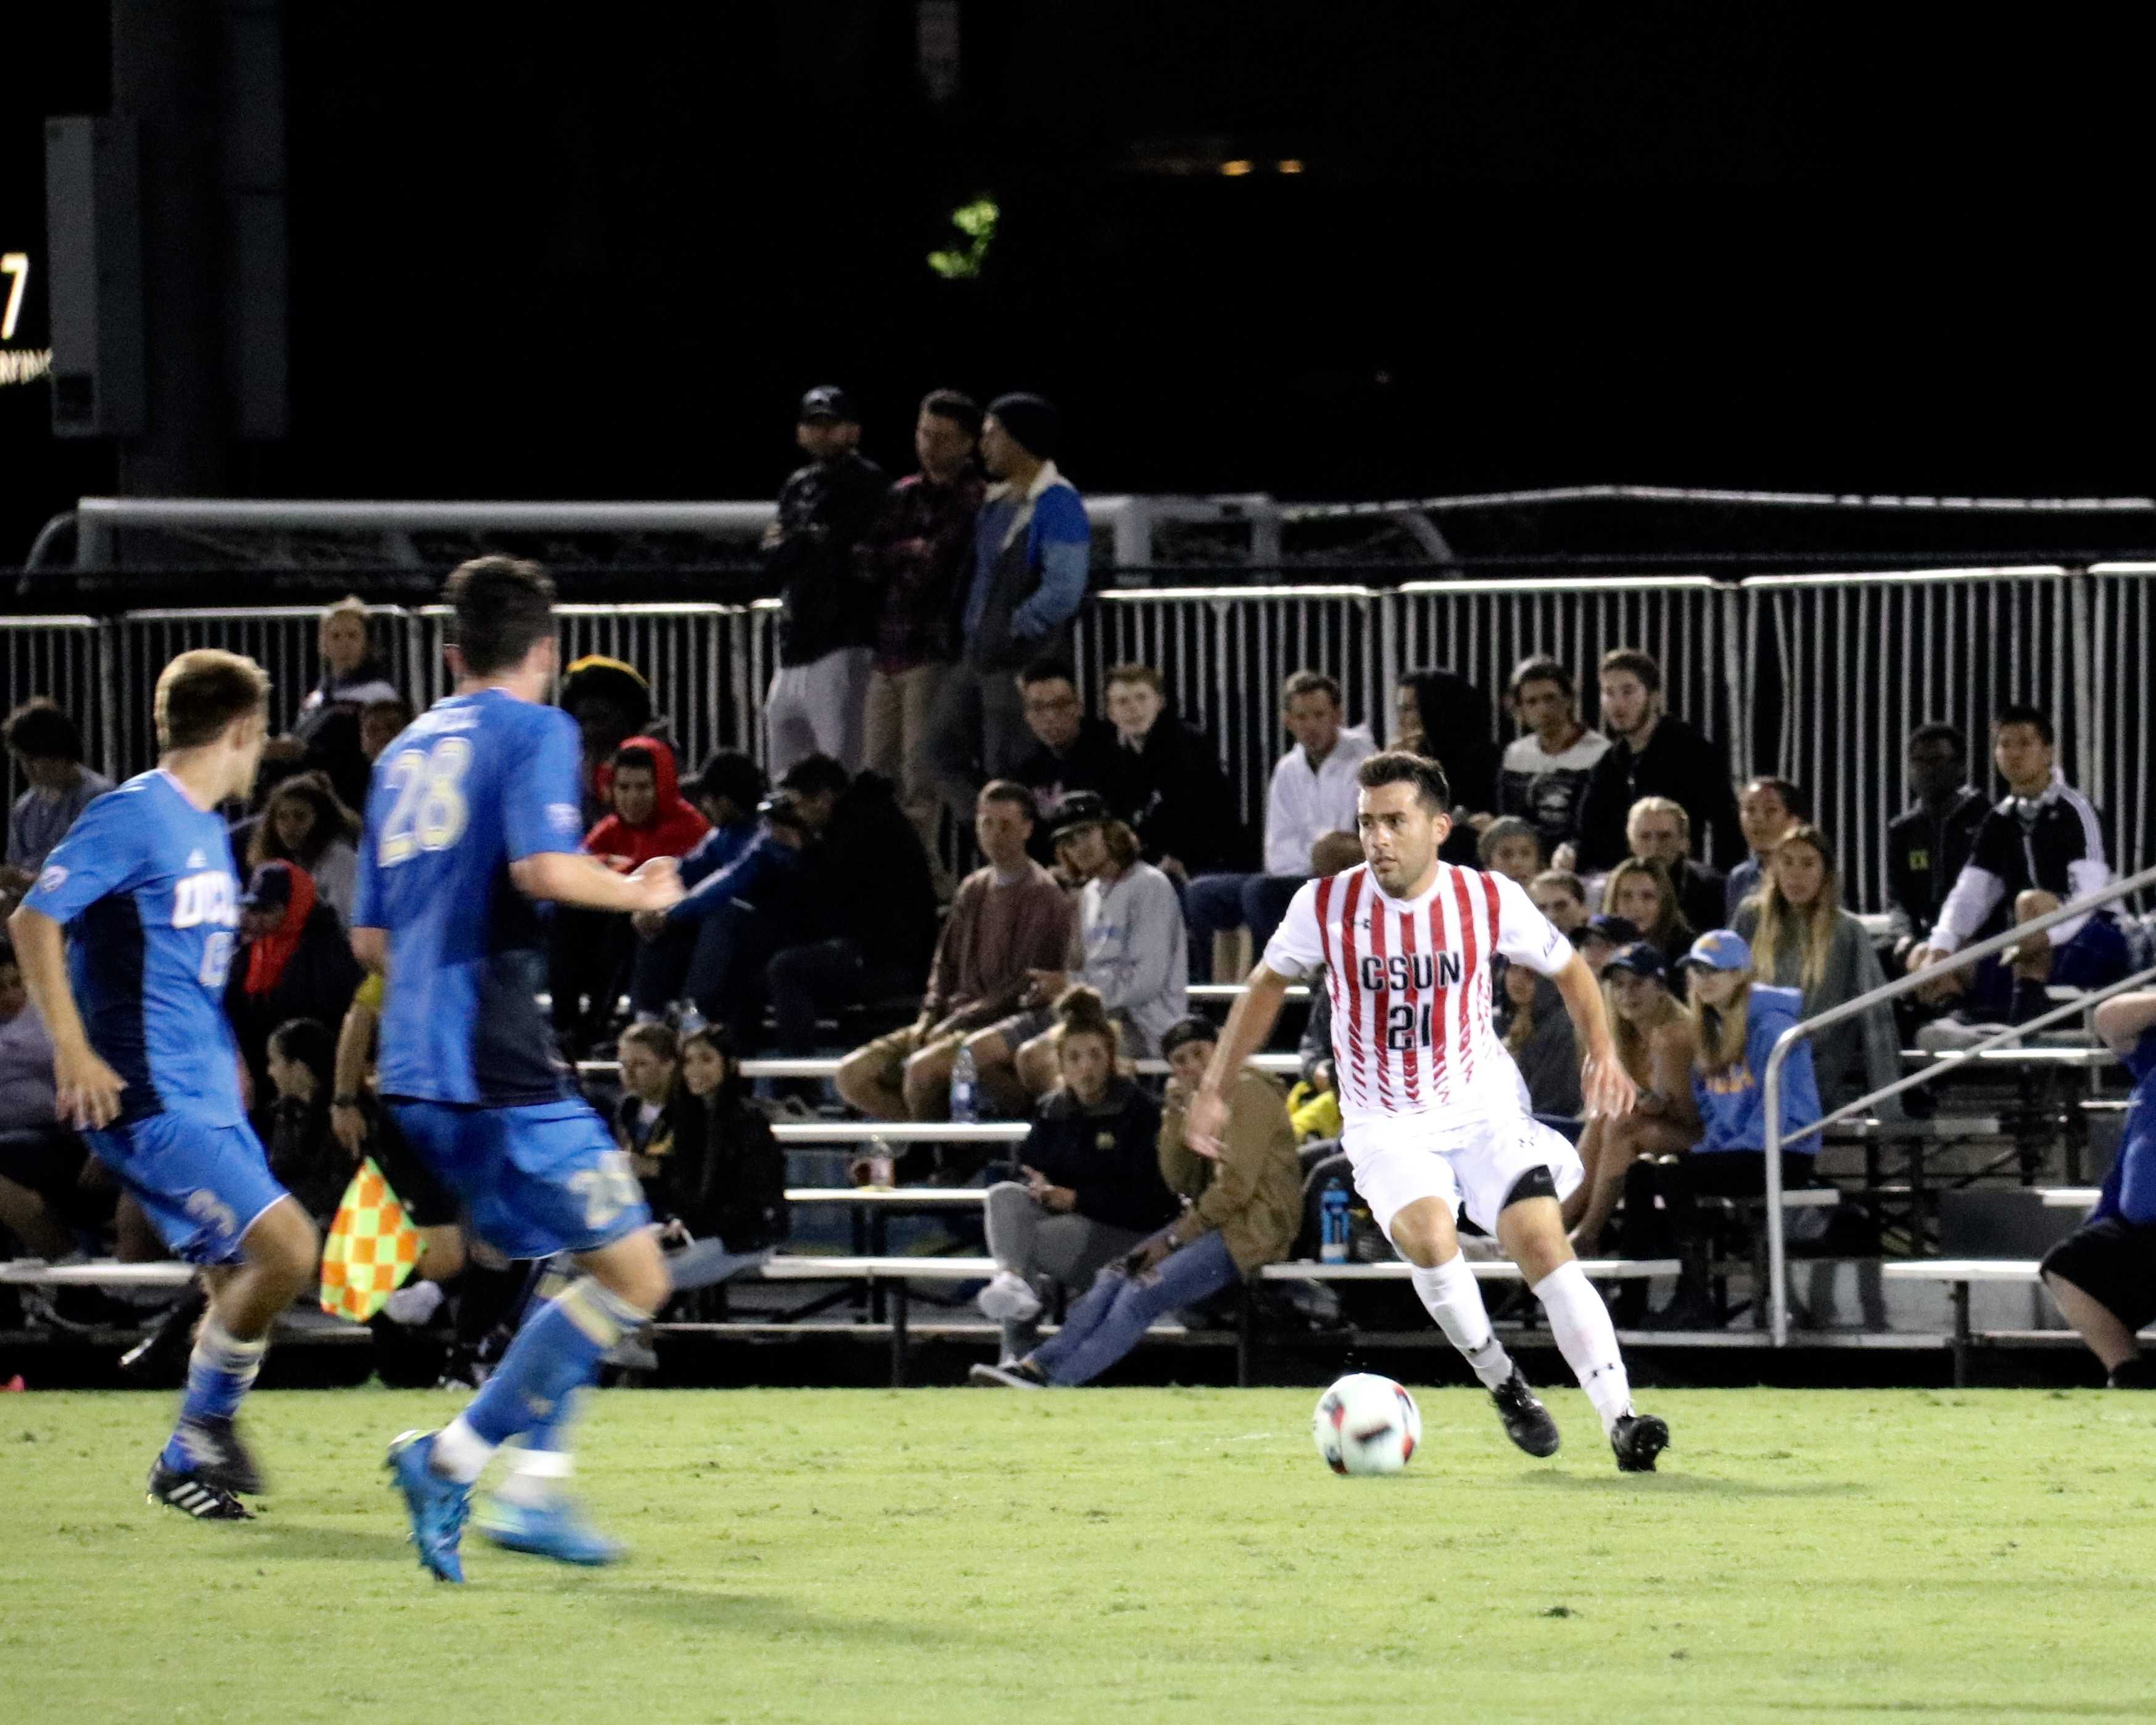 Senior Richard Martinez dribbles the ball away from the UCLA Bruins. Photo credit: Kendall Faulkner